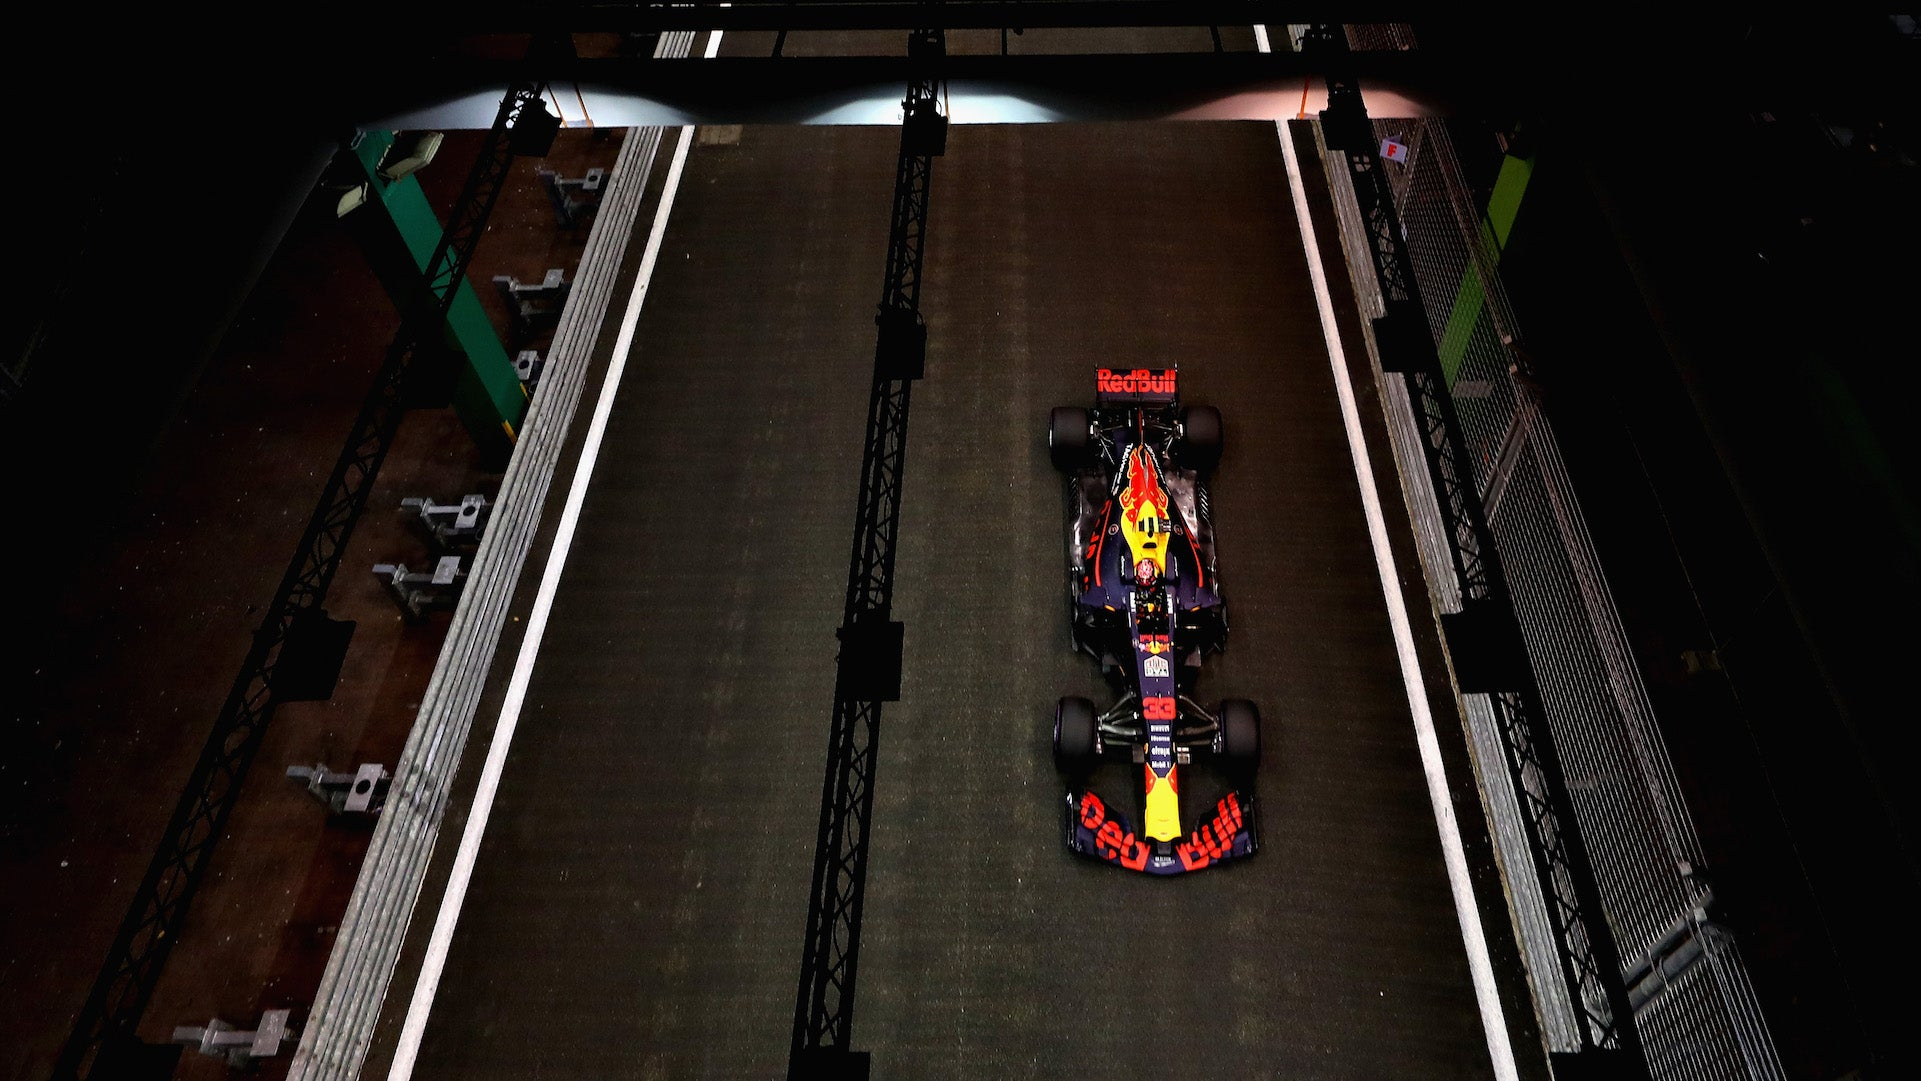 F1 Wants To 'Amplify' Engine Sound On TV By Adding Microphones To The Exhaust